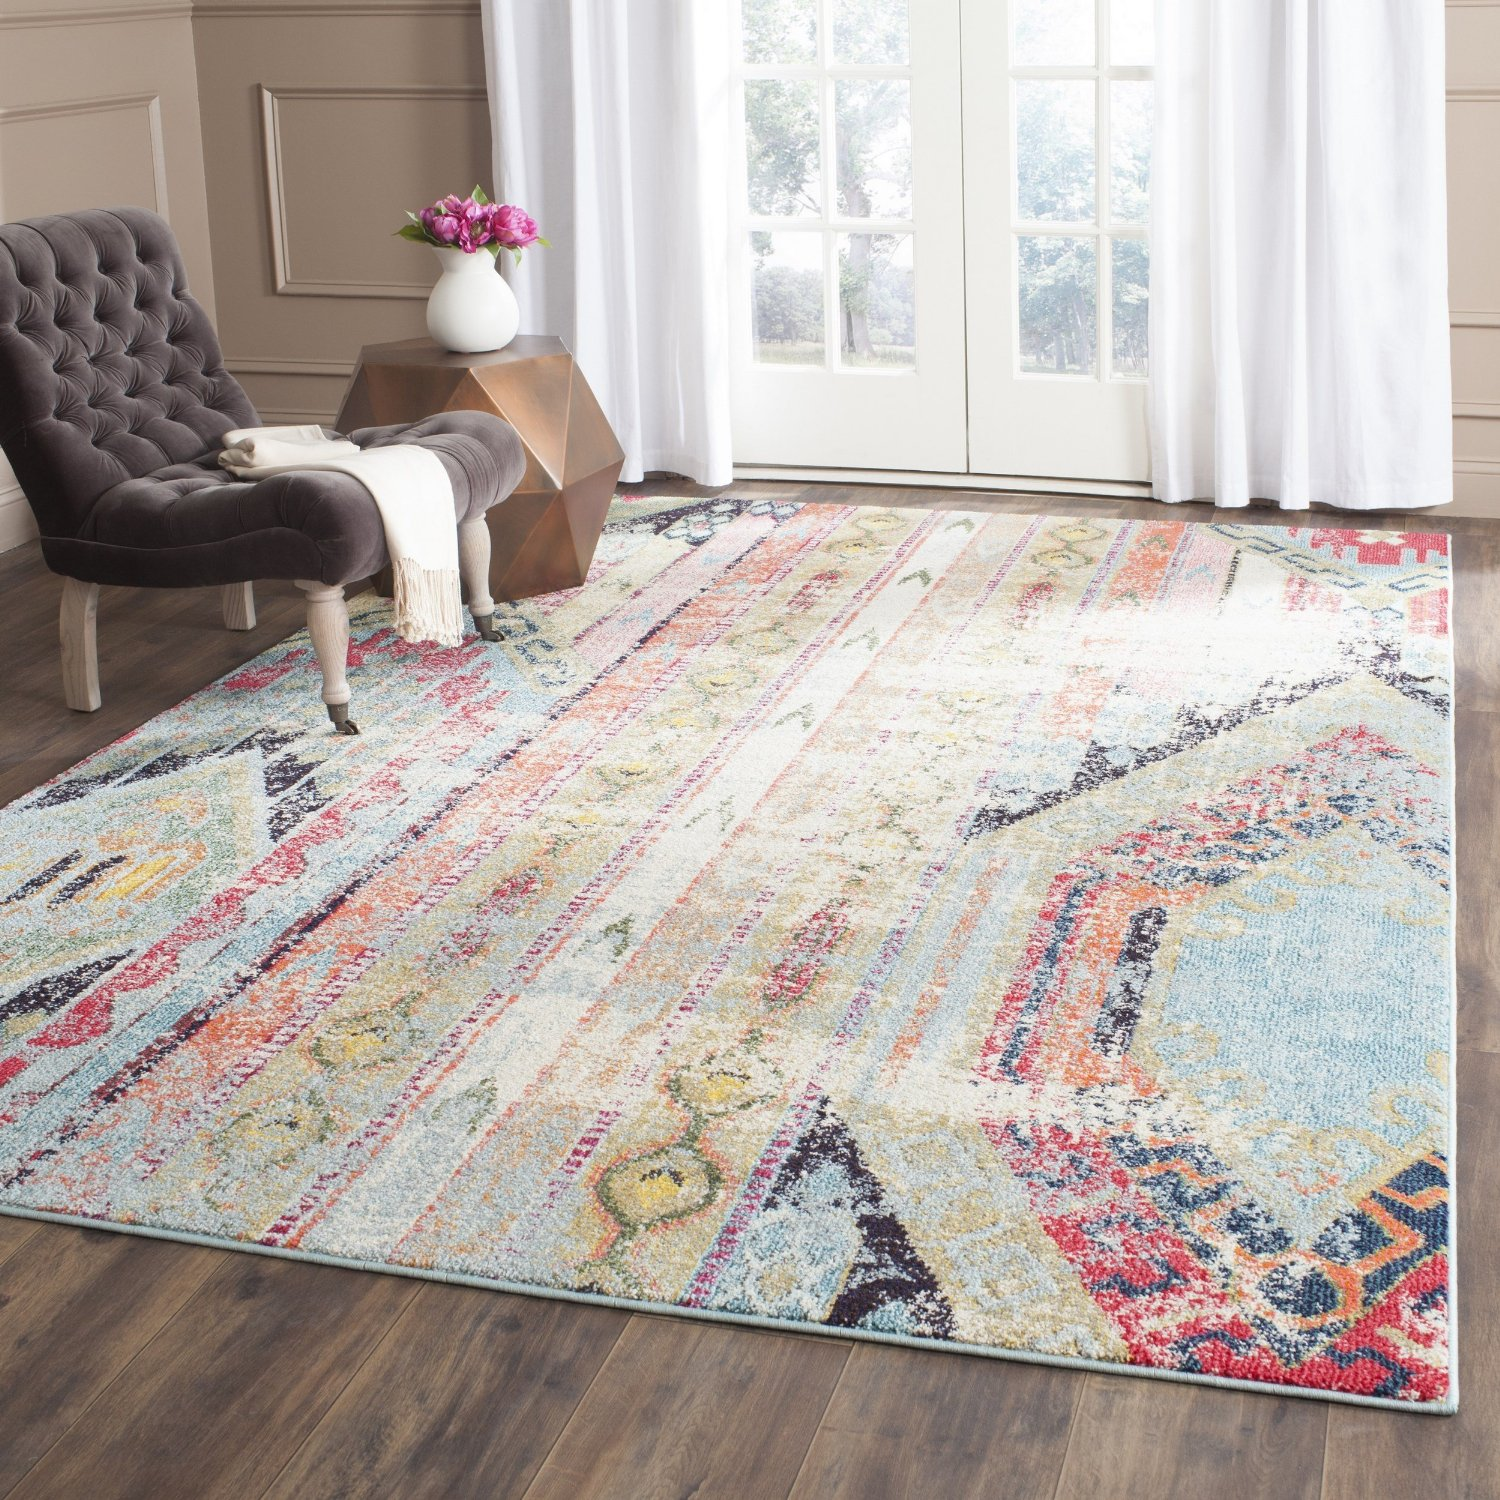 Funky Rainbow Colored Area Rugs: Funky Geometric Cream Based Area Rug With Other Colors